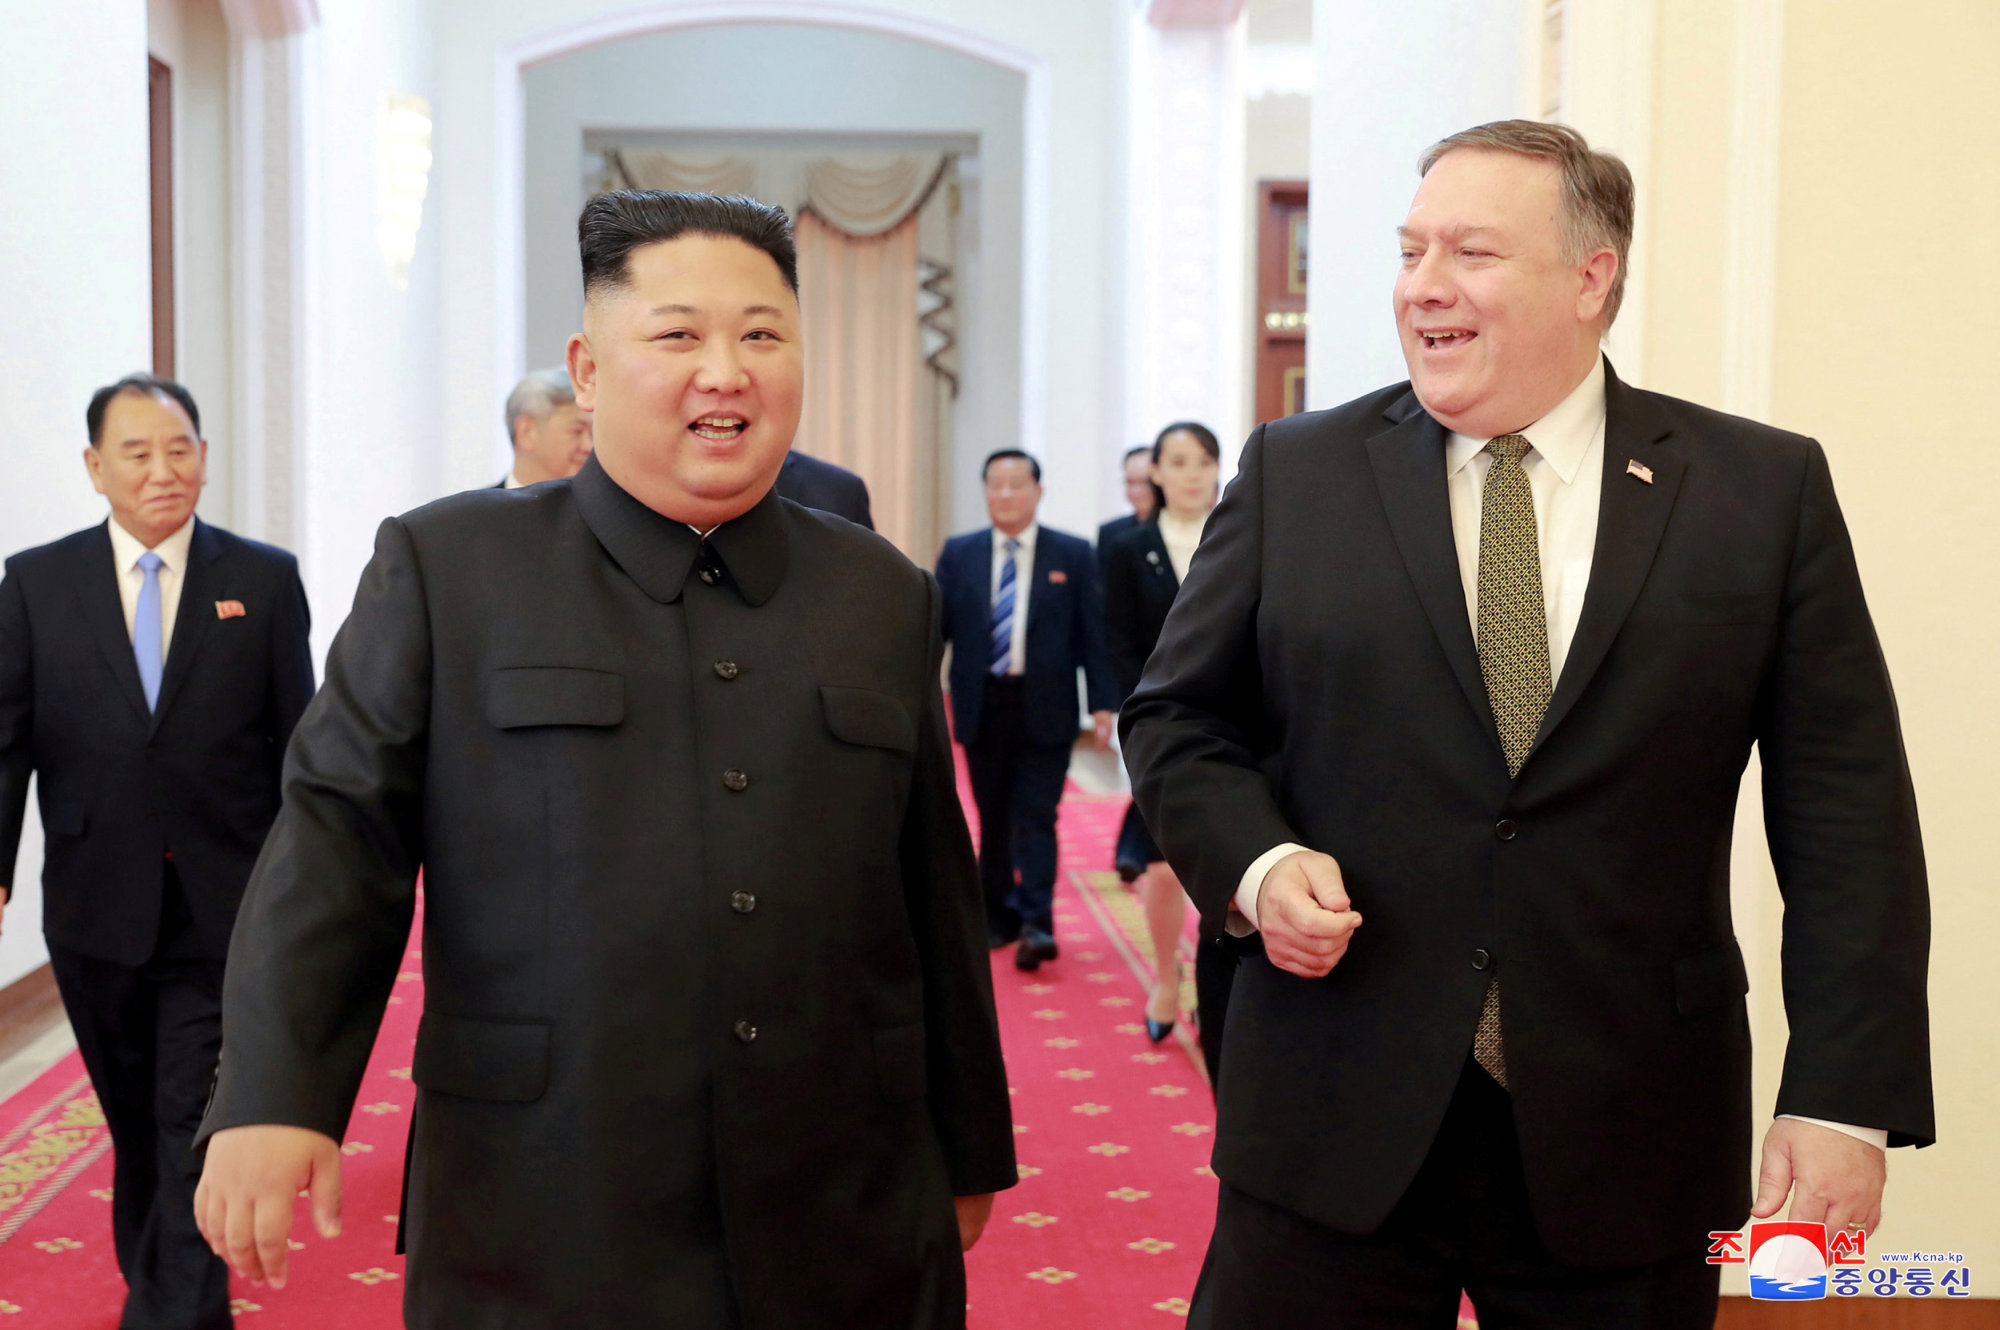 North Korean leader Kim Jong Un meets with U.S. Secretary of State Mike Pompeo (right) in Pyongyang in this photo released by North Korea's Korean Central News Agency (KCNA) on Sunday. | KNCA / VIA REUTERS